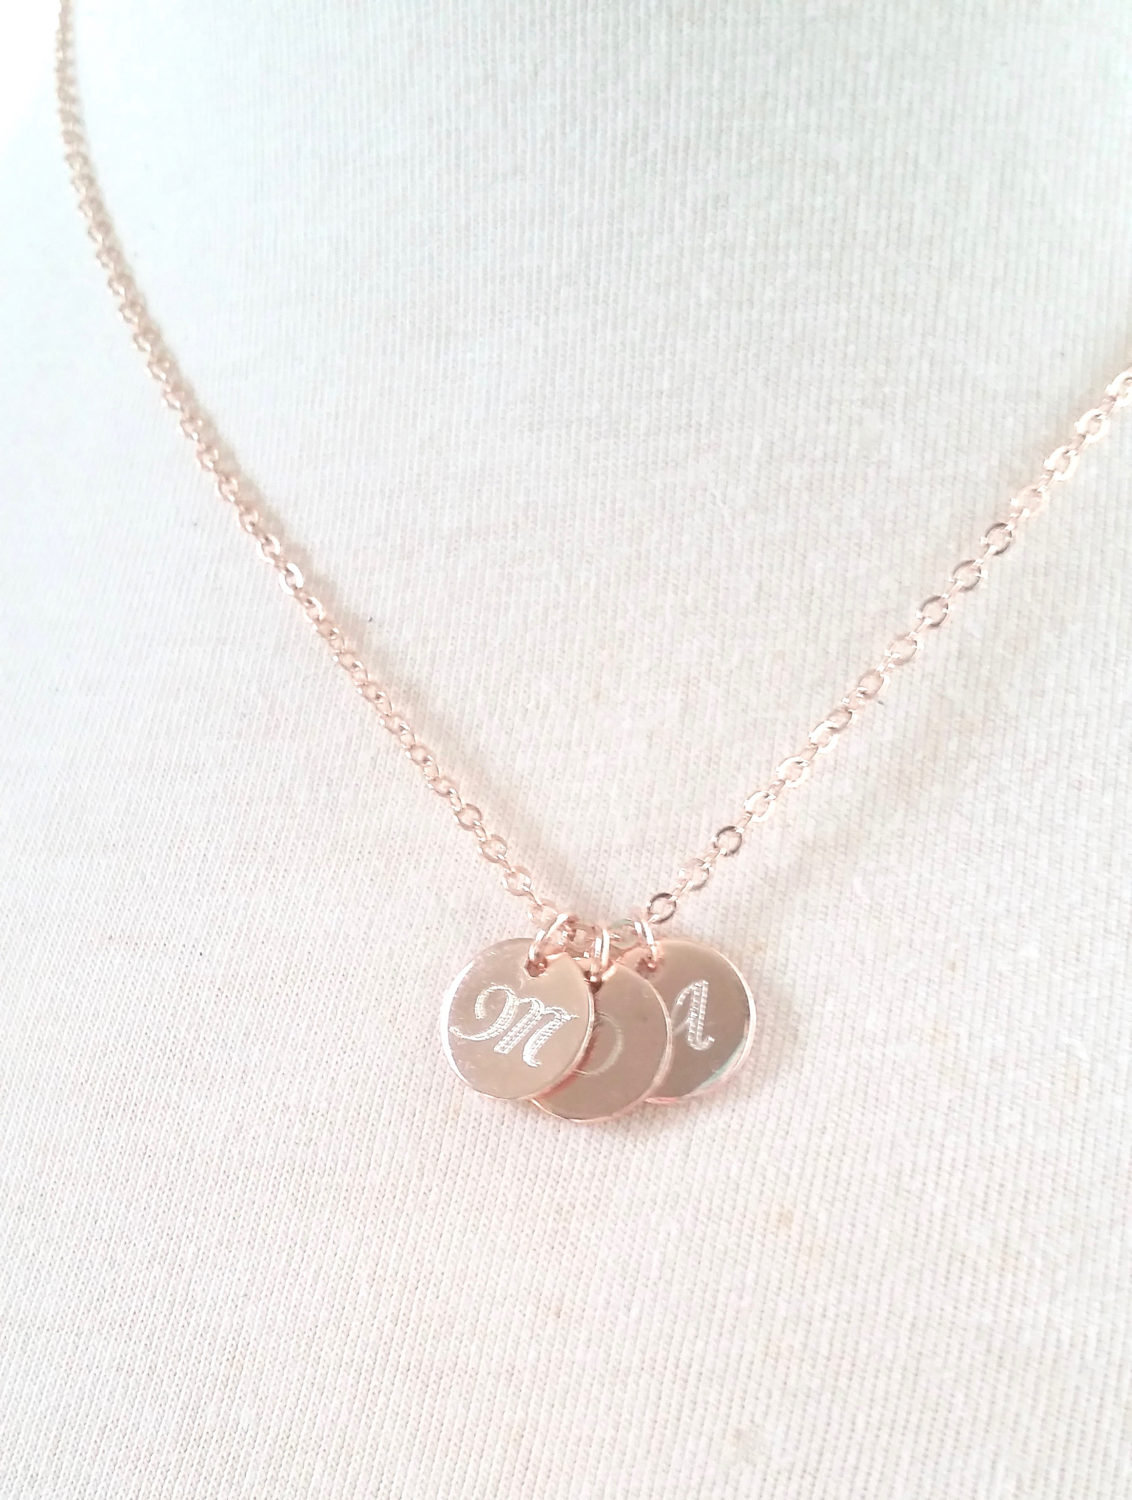 Mothers Day Gift Monogram Disc Necklace Initial Necklace Personalized Name Gift For Mom Engraved Gold Initial Charm Necklace